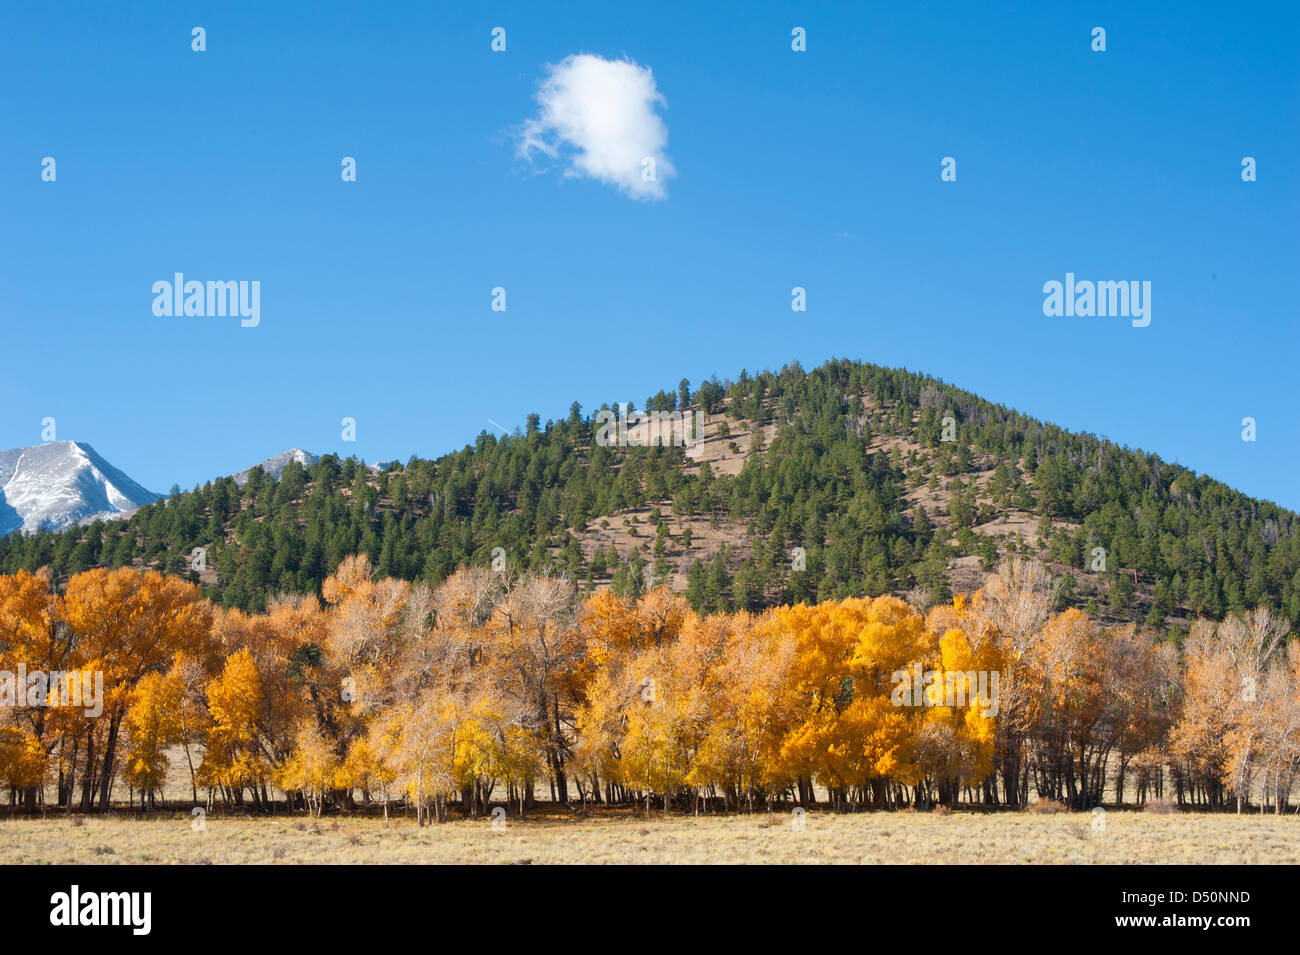 A mountainside full of evergreens with a dusting of snow on the mountain in the background complete this autumn - Stock Image